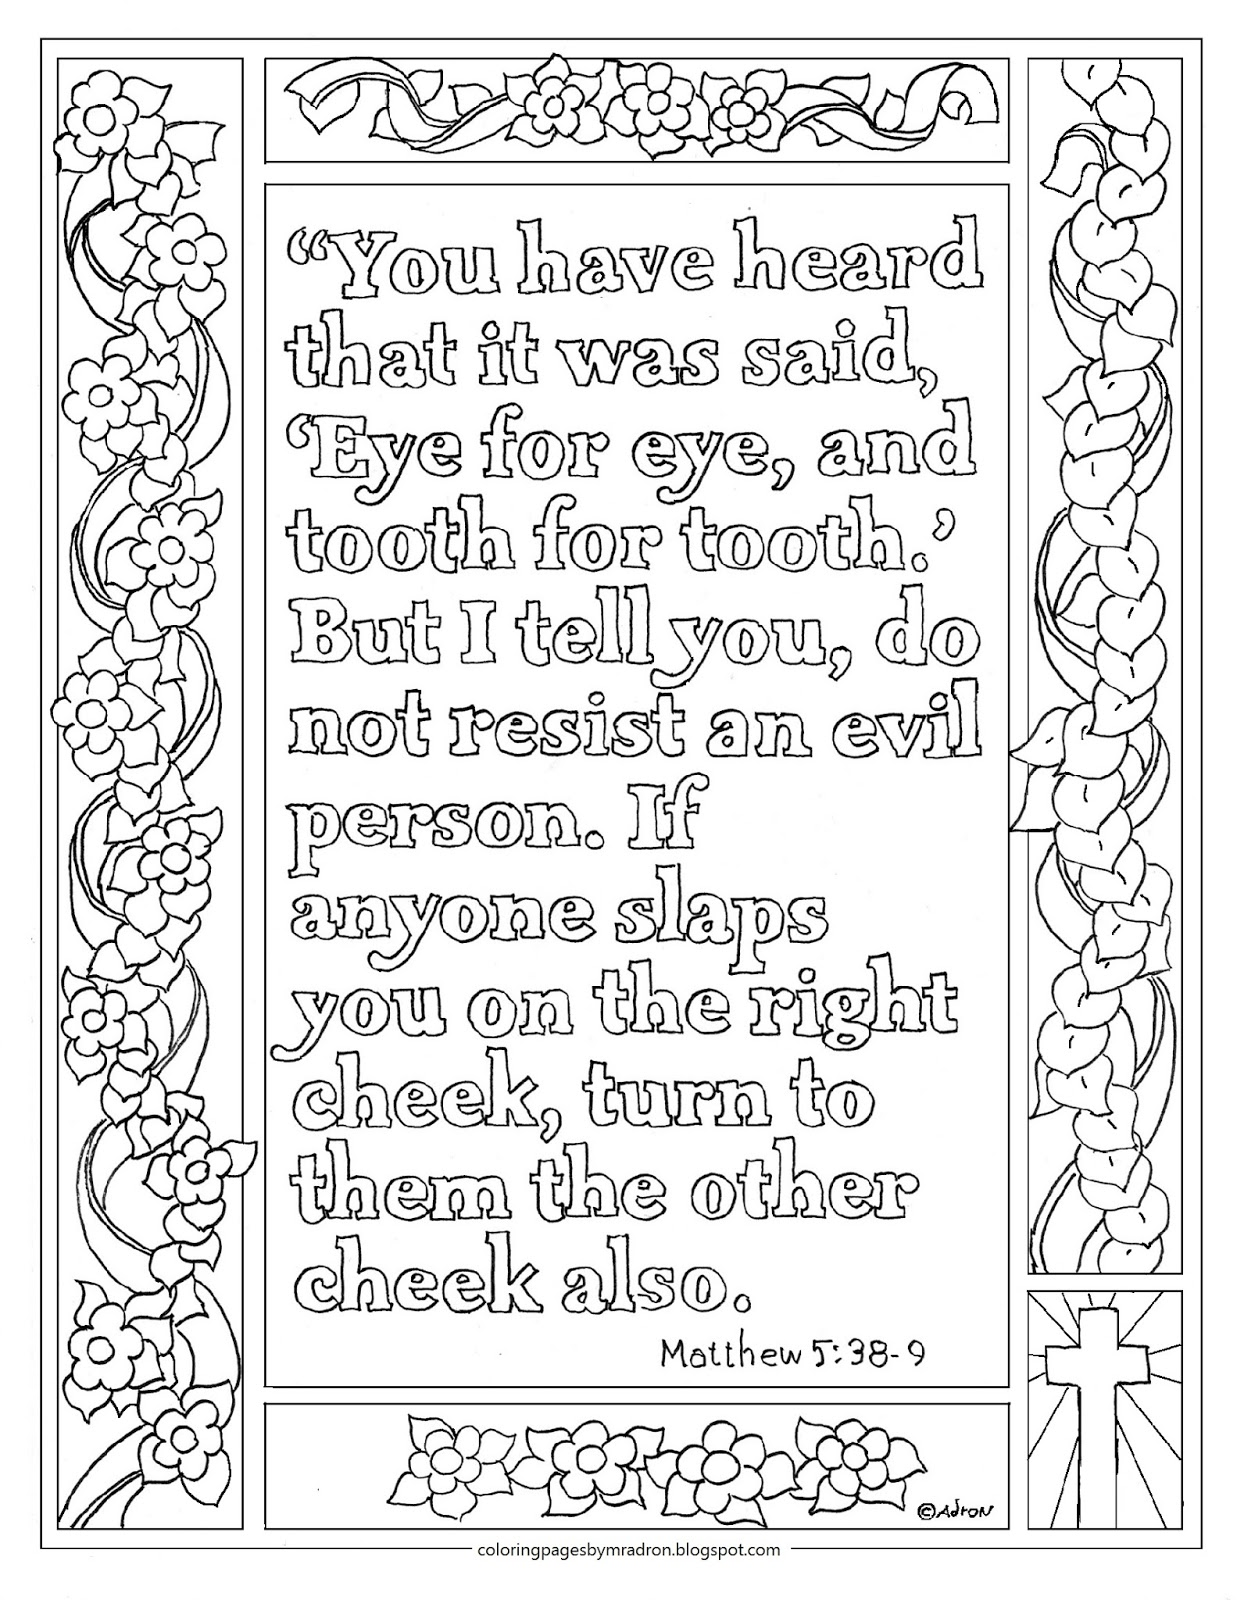 Matthew 538 39 Print And Color Page Turn The Other Cheek Bible Verse